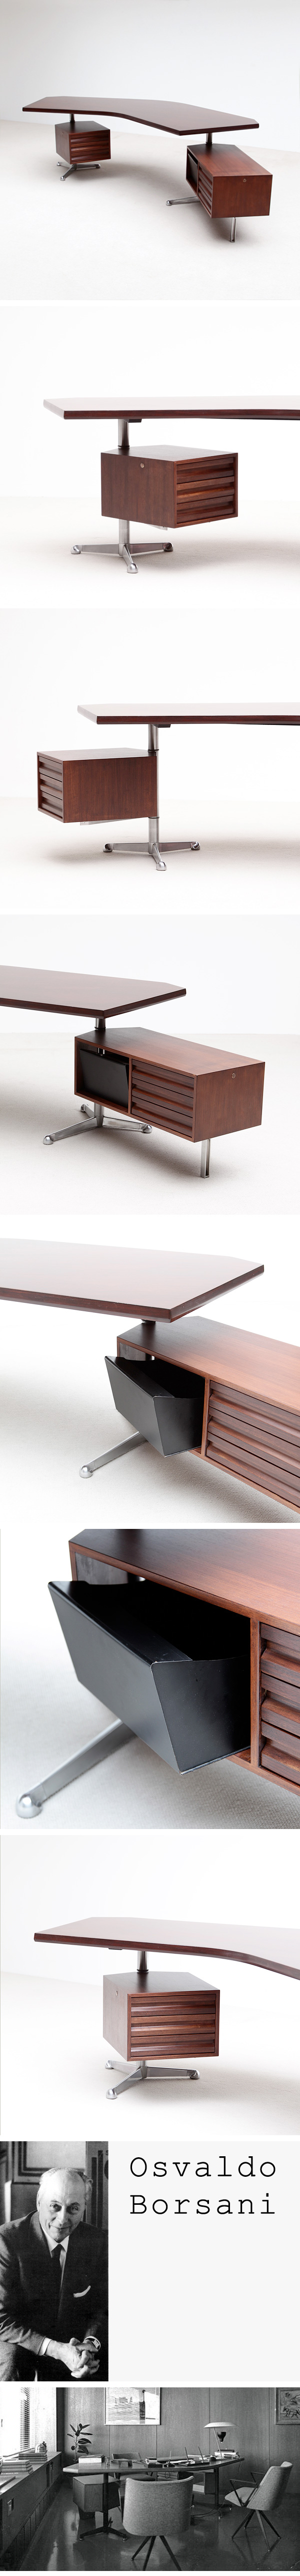 T96, Executive, Desk, Osvaldo Borsani, 1956